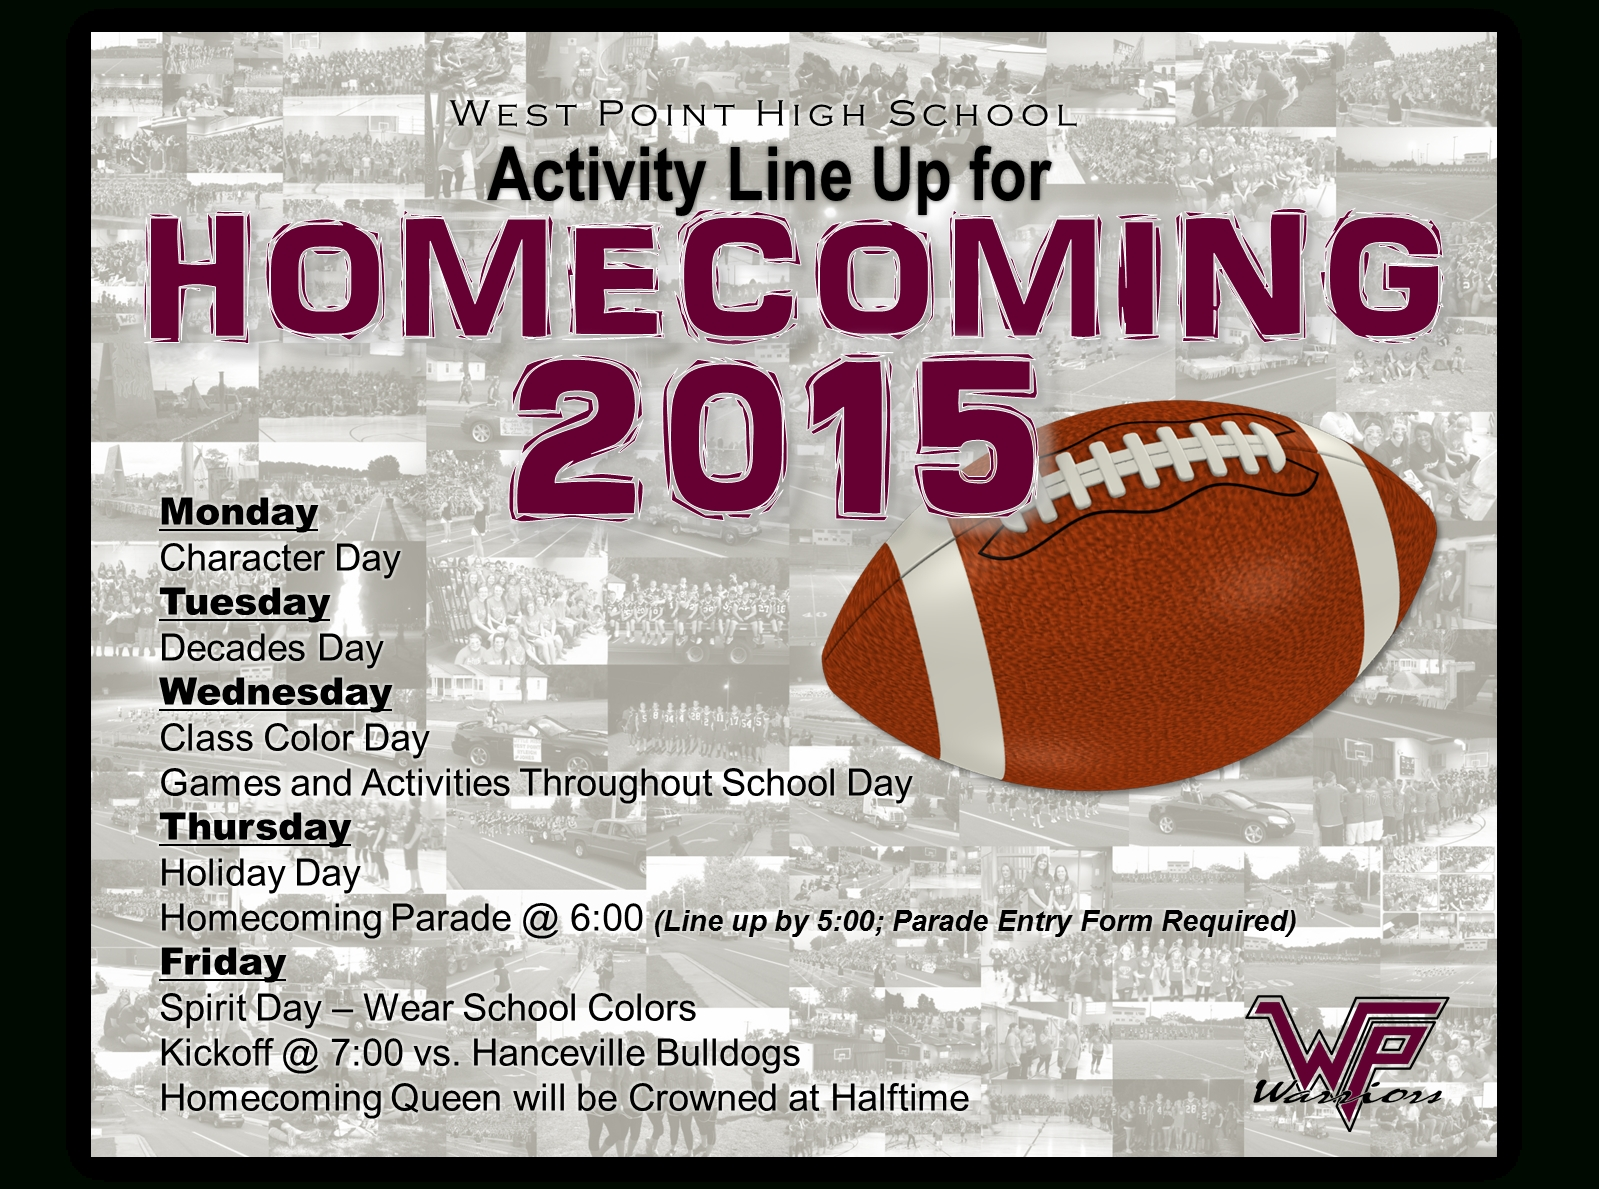 10 Wonderful Homecoming Ideas For High School homecoming 2015 activities west point high school 2020